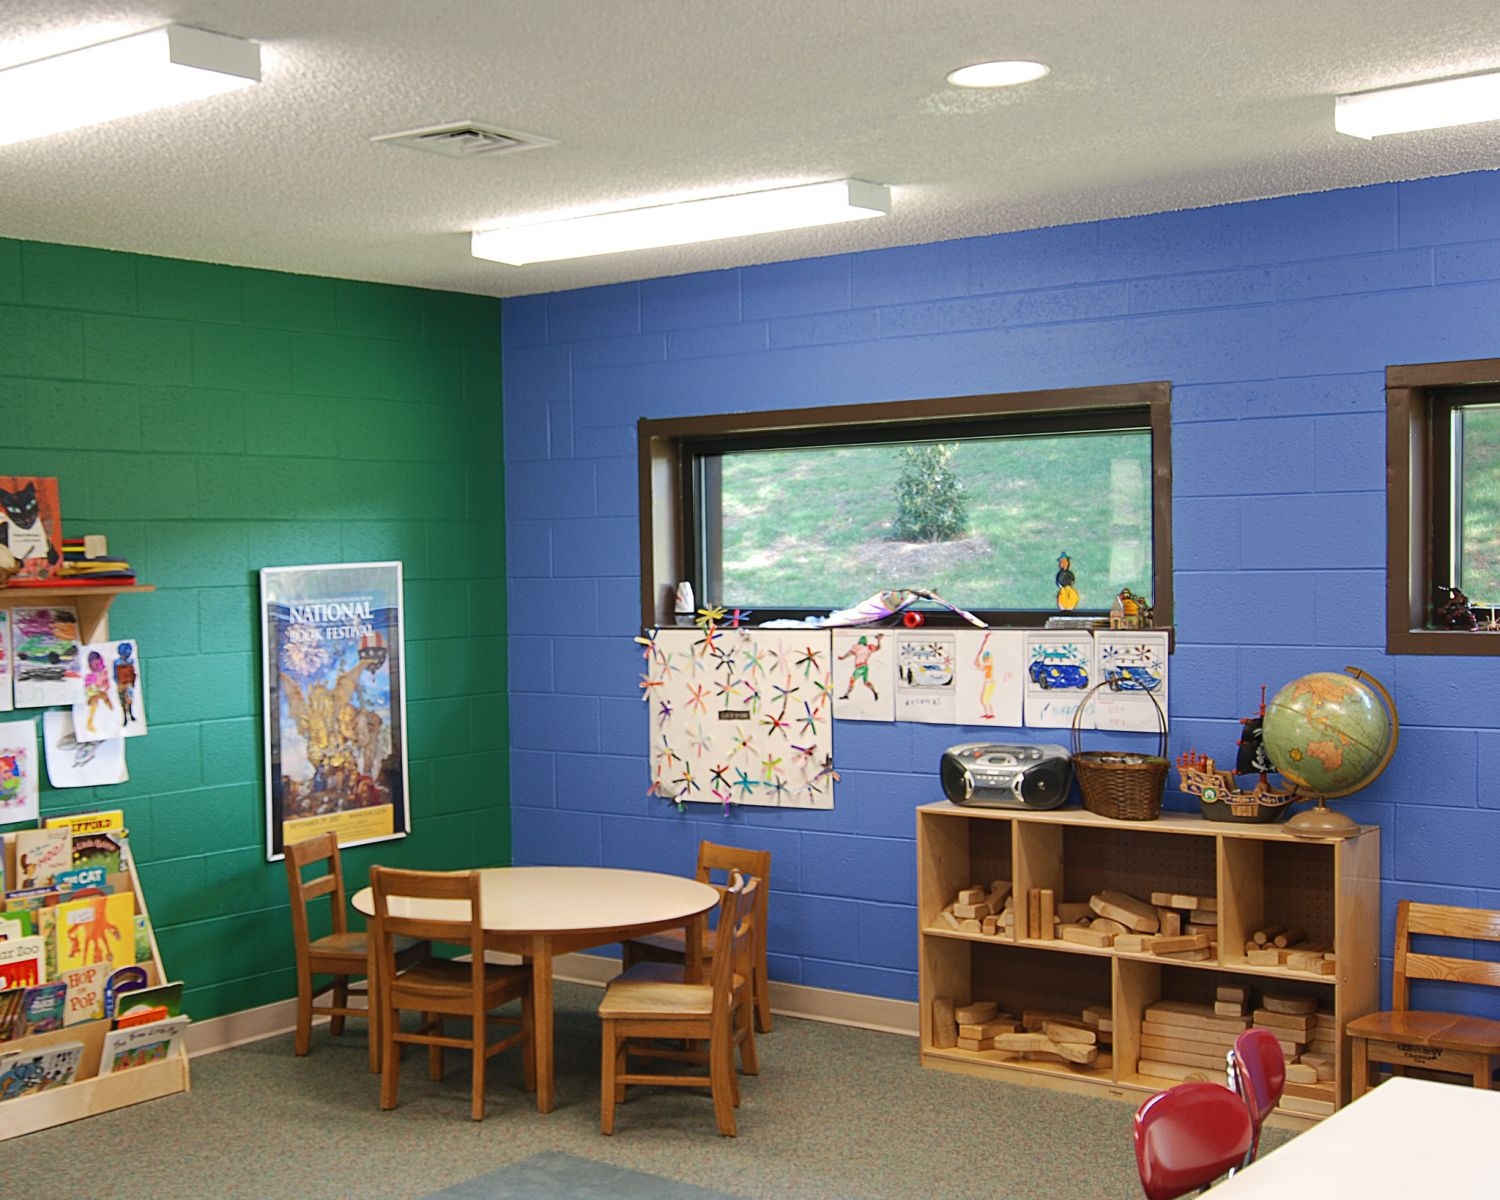 Classroom Design In Kindergarten ~ Principles of universal design preschool through